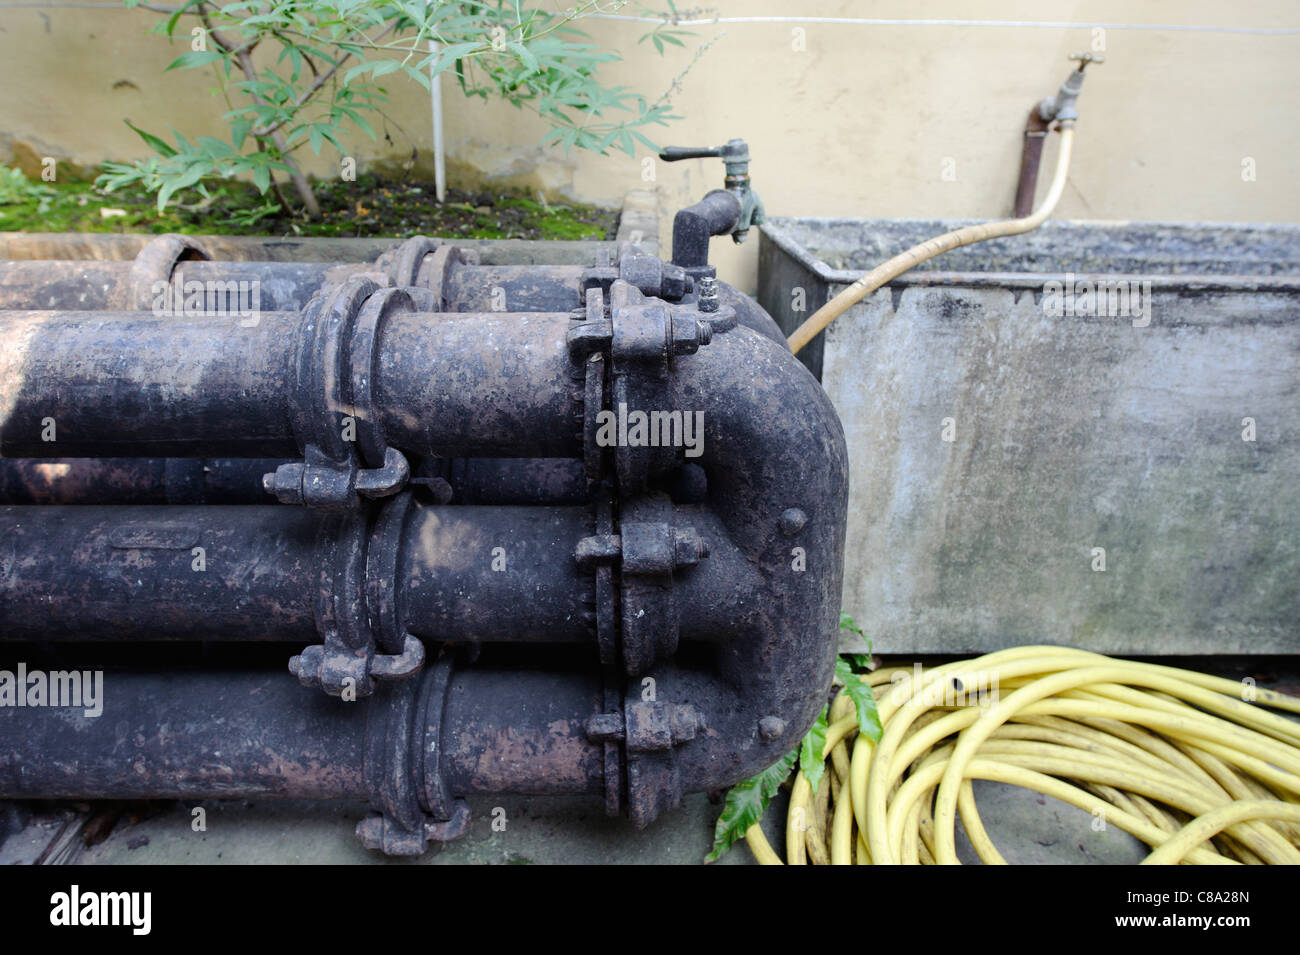 Old cast iron triple greenhouse hot water heating system - Stock Image